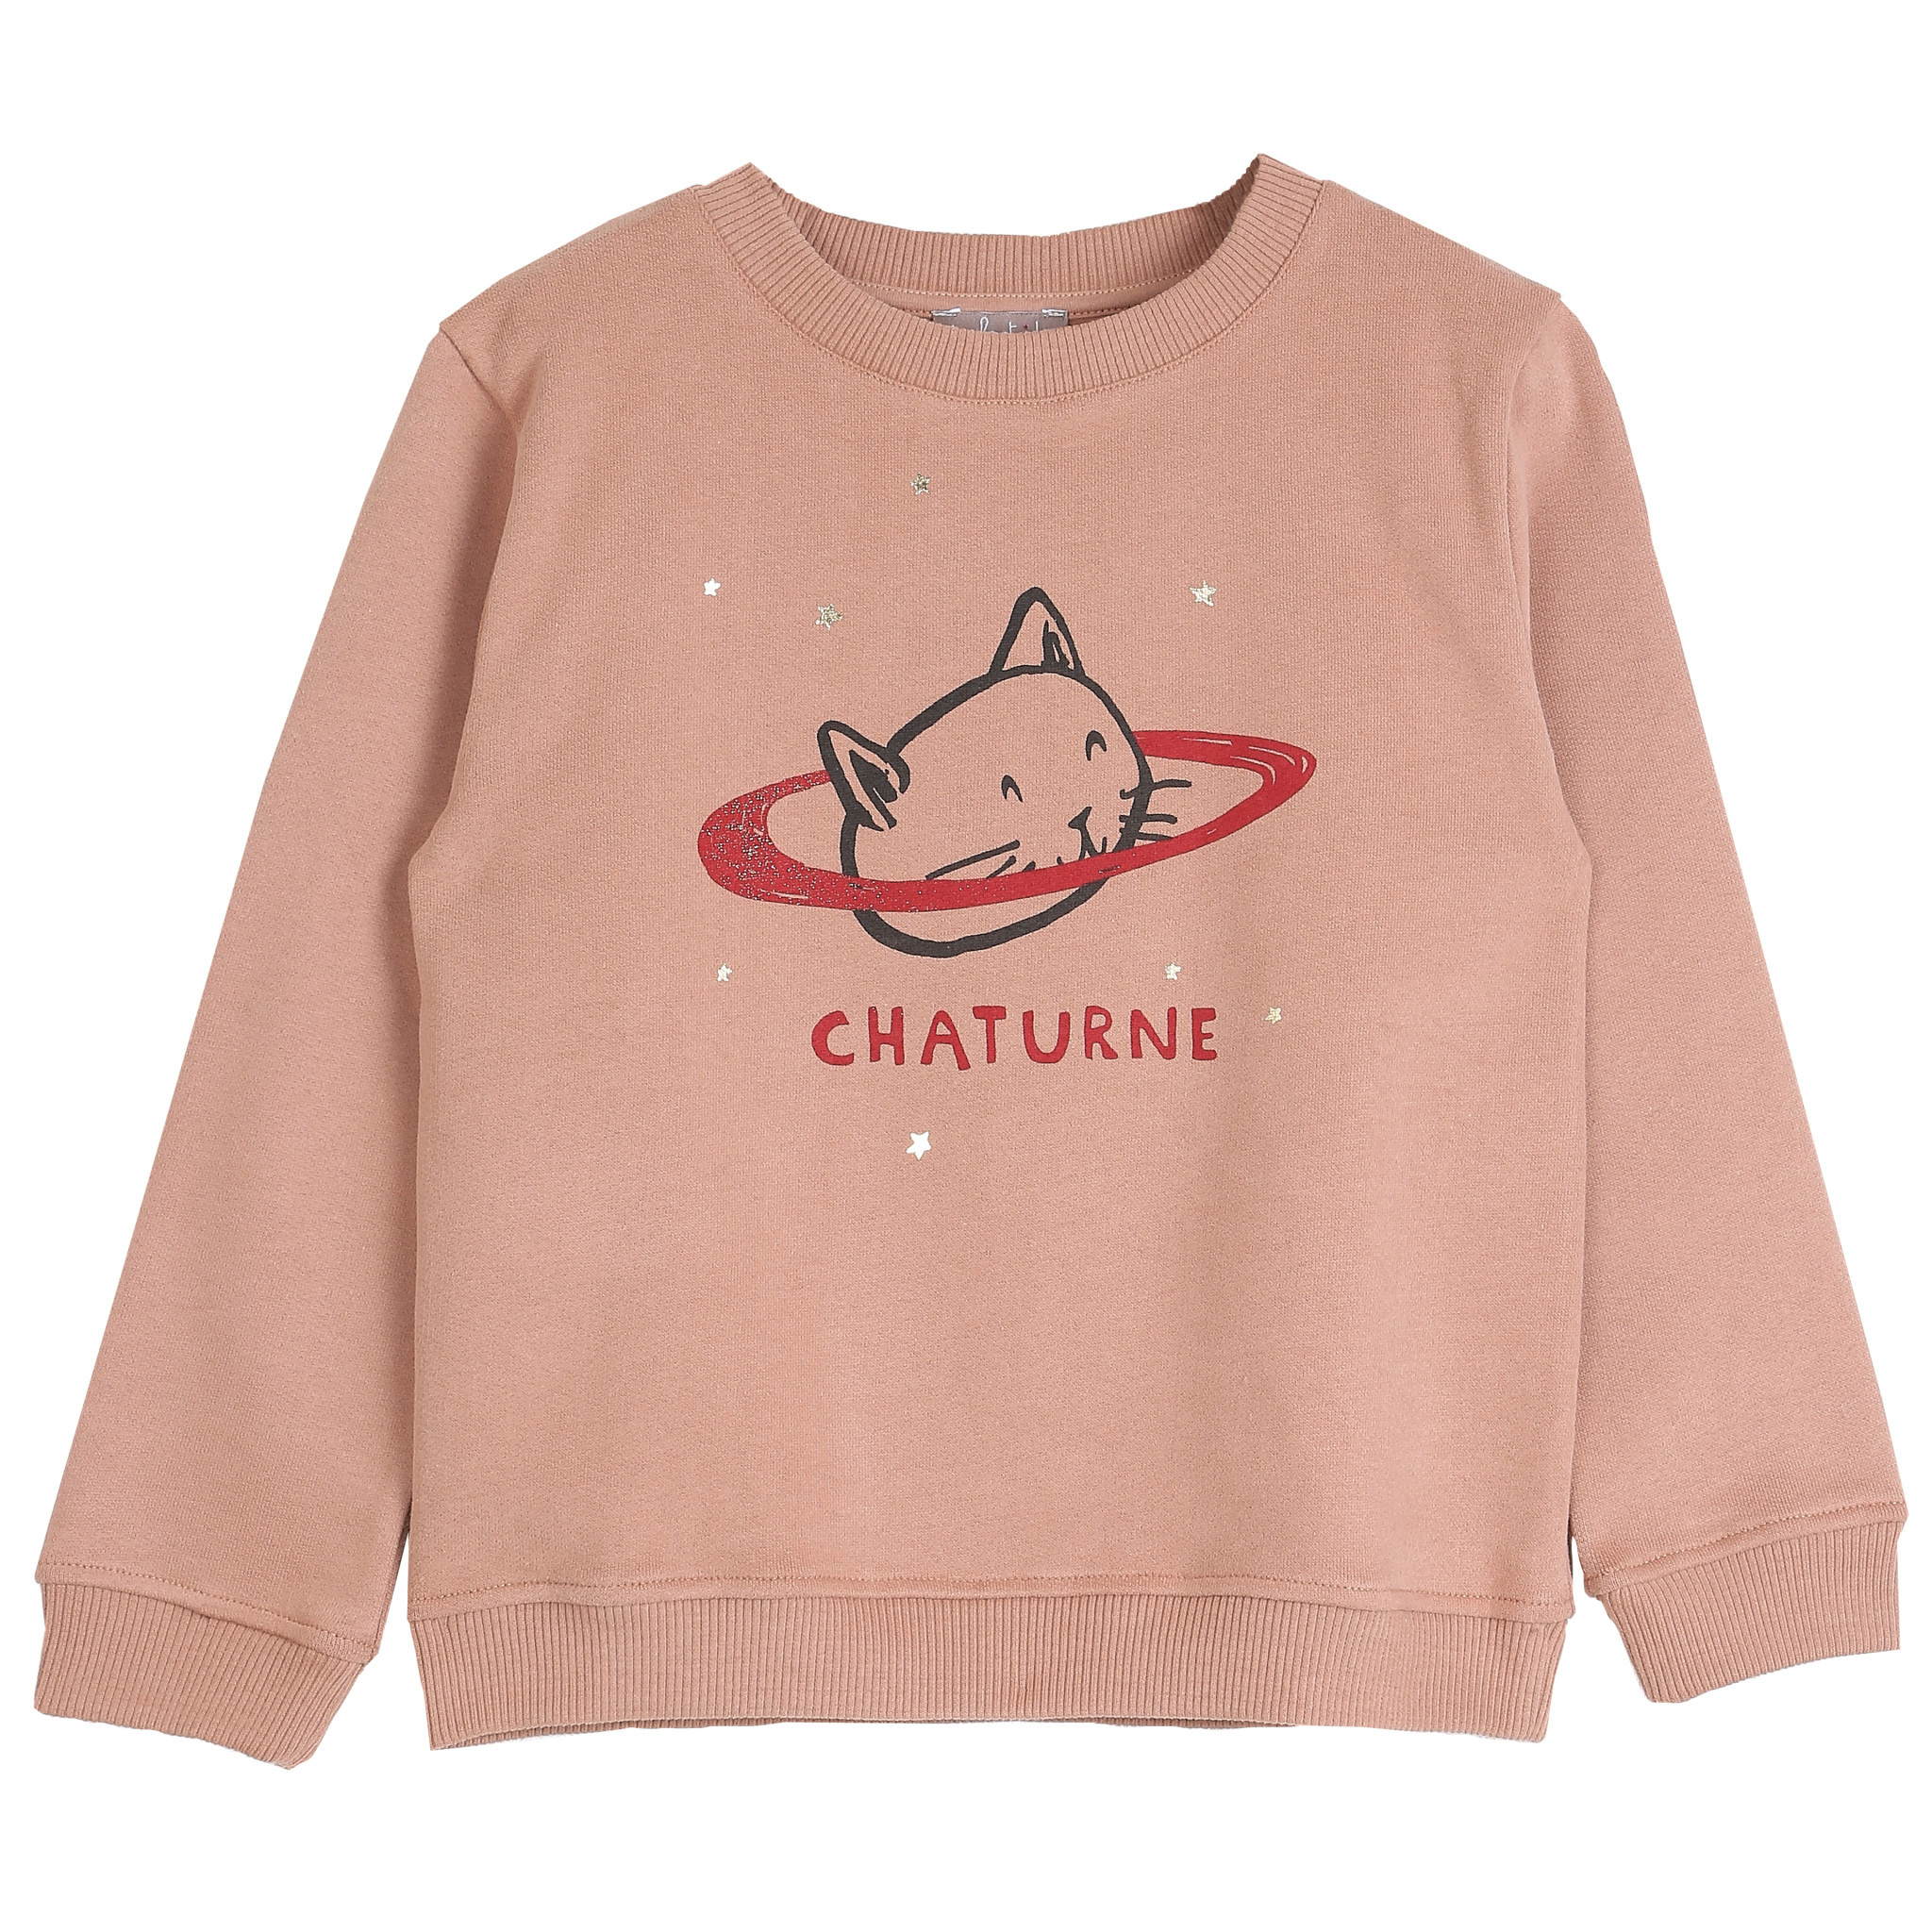 Sweatshirt marron glace chaturn-1